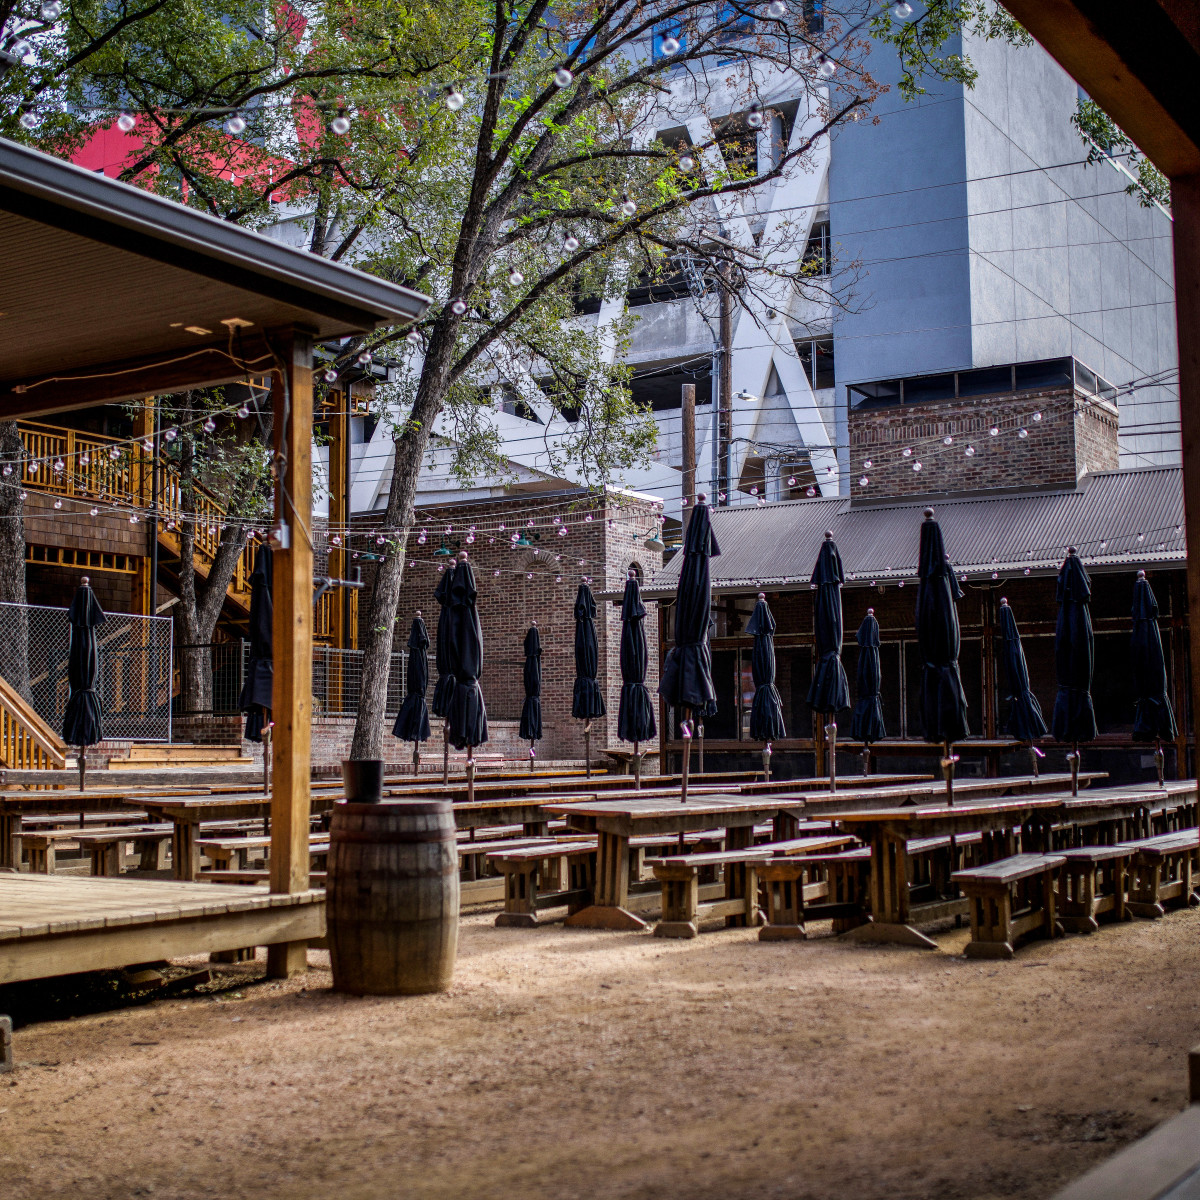 Banger's Expansion patio